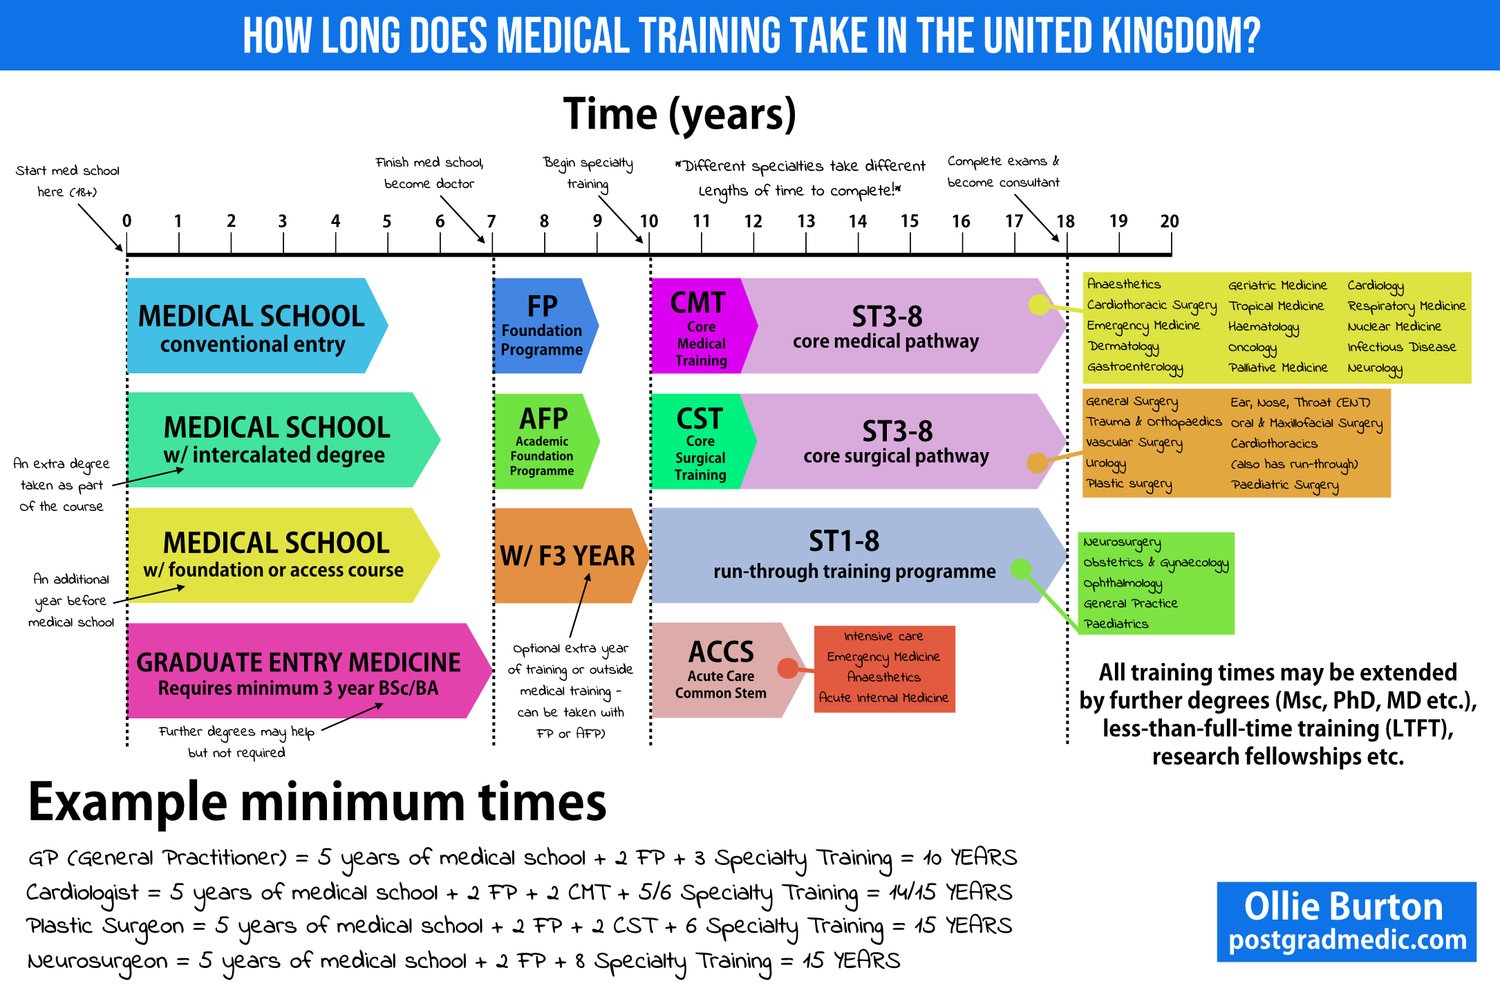 How long does it take to become a Doctor in the UK?